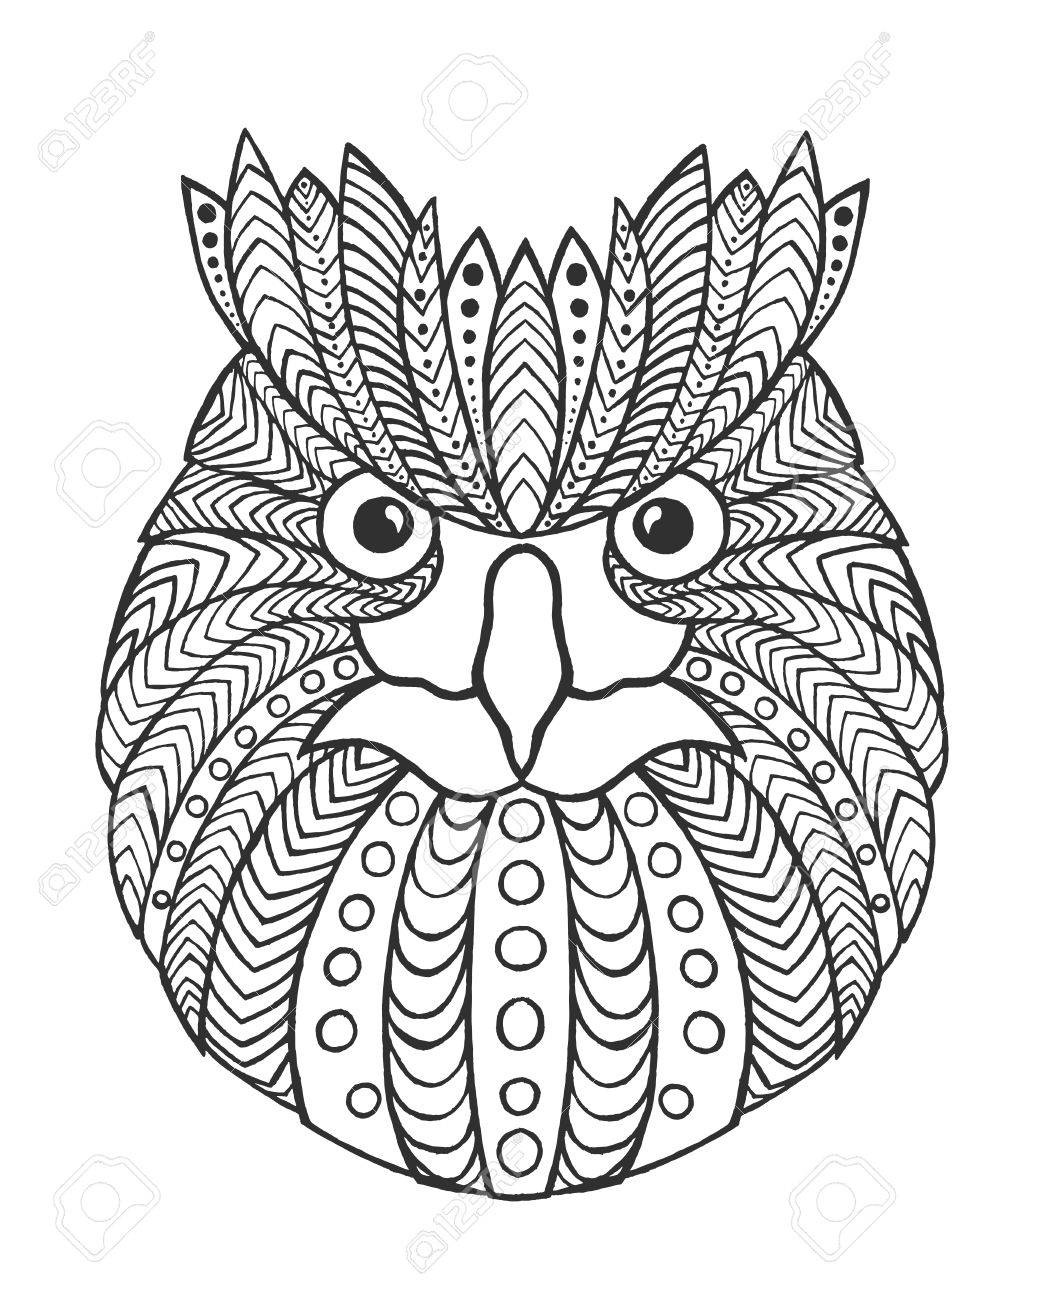 1040x1300 Eagle Owl Head. Adult Antistress Coloring Page. Black White Hand